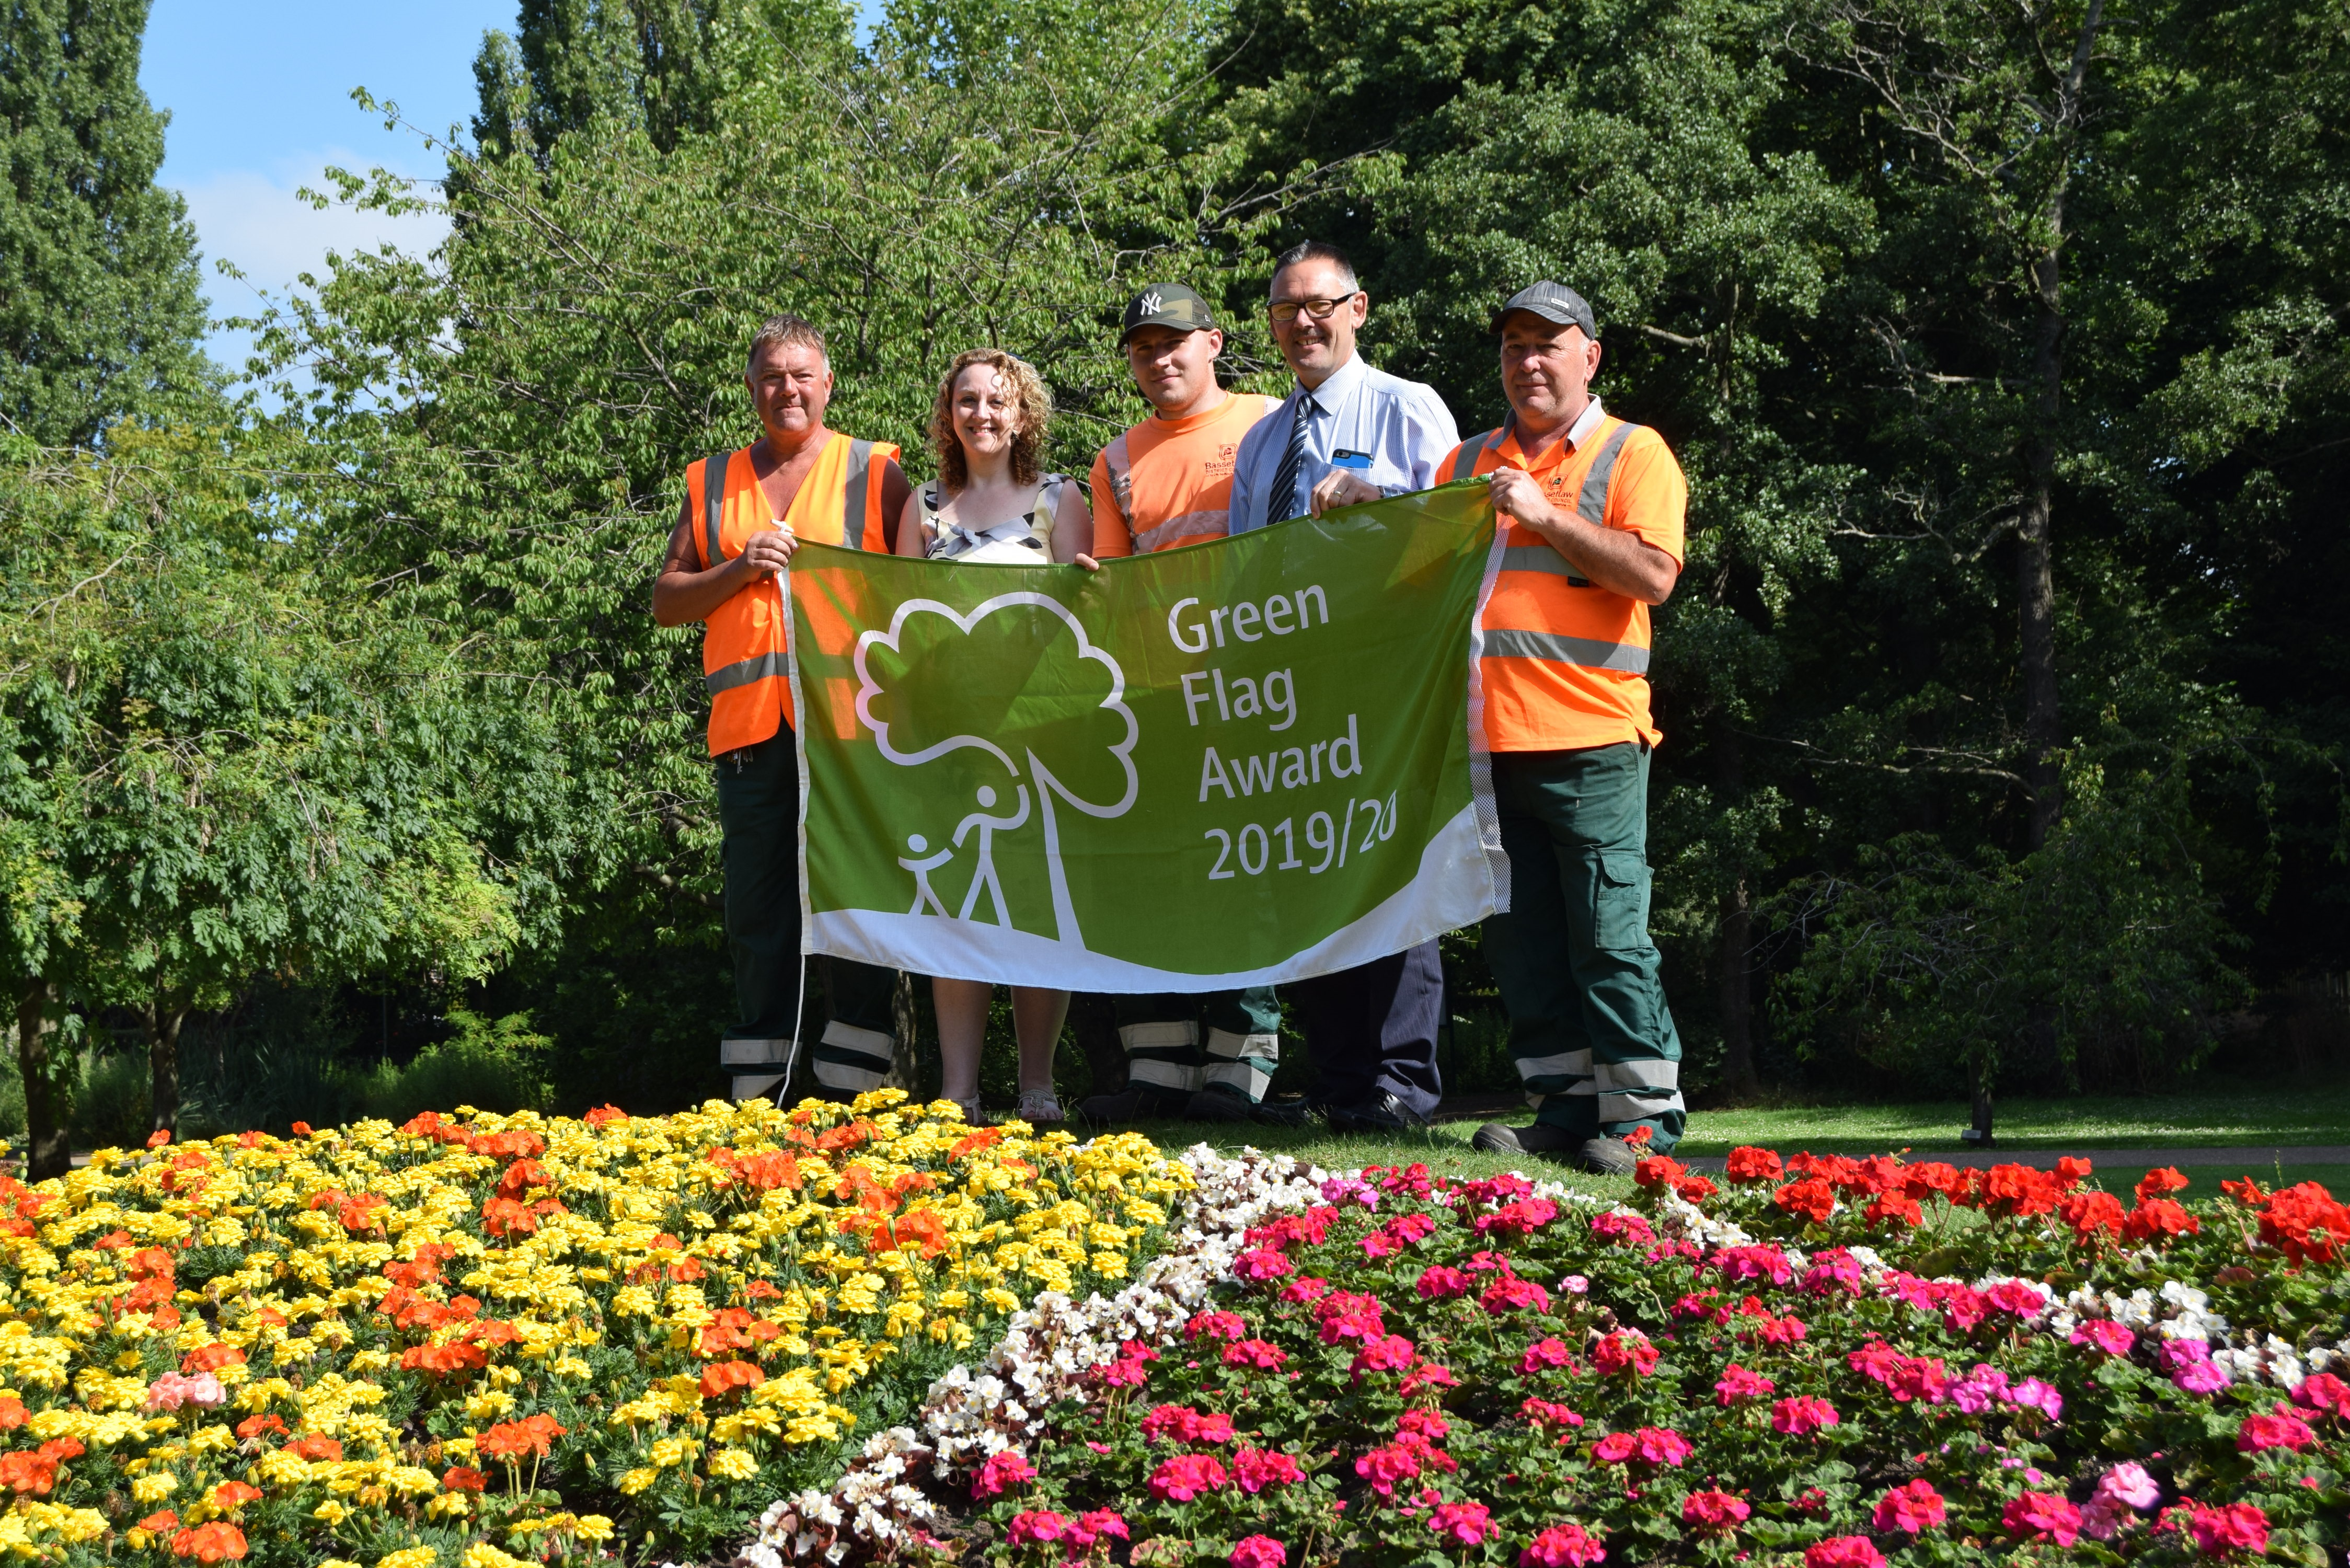 Parks recognised as two of the UK's very best green spaces